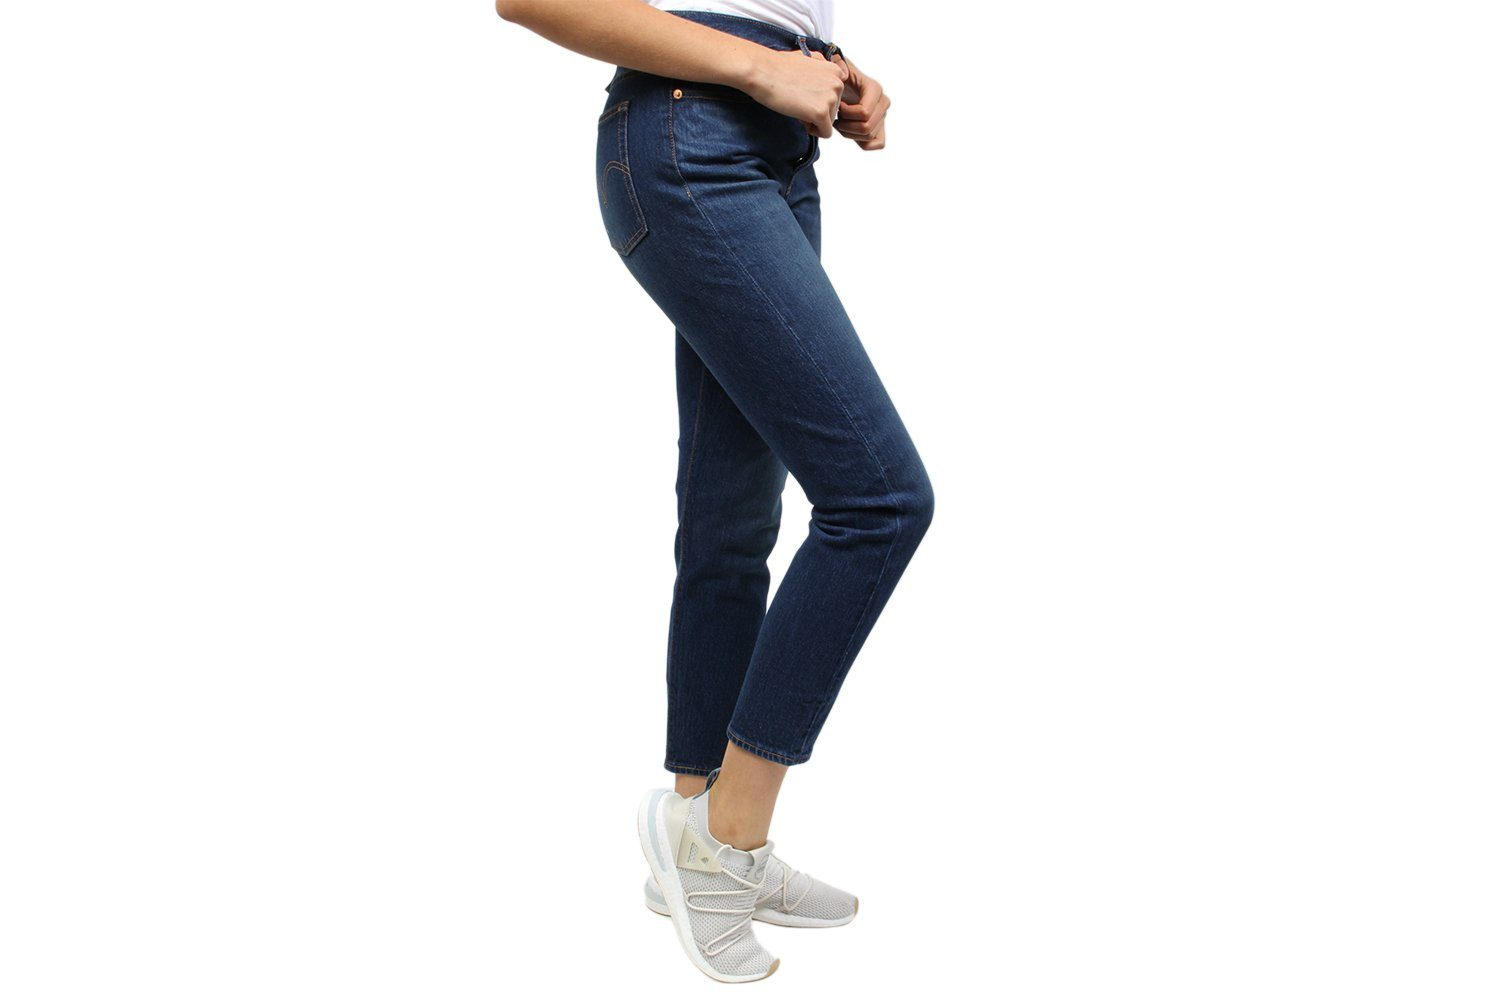 WEDGIE ICON FIT AUTHENTIC FAV-2286100320 WOMENS SOFTGOODS LEVIS